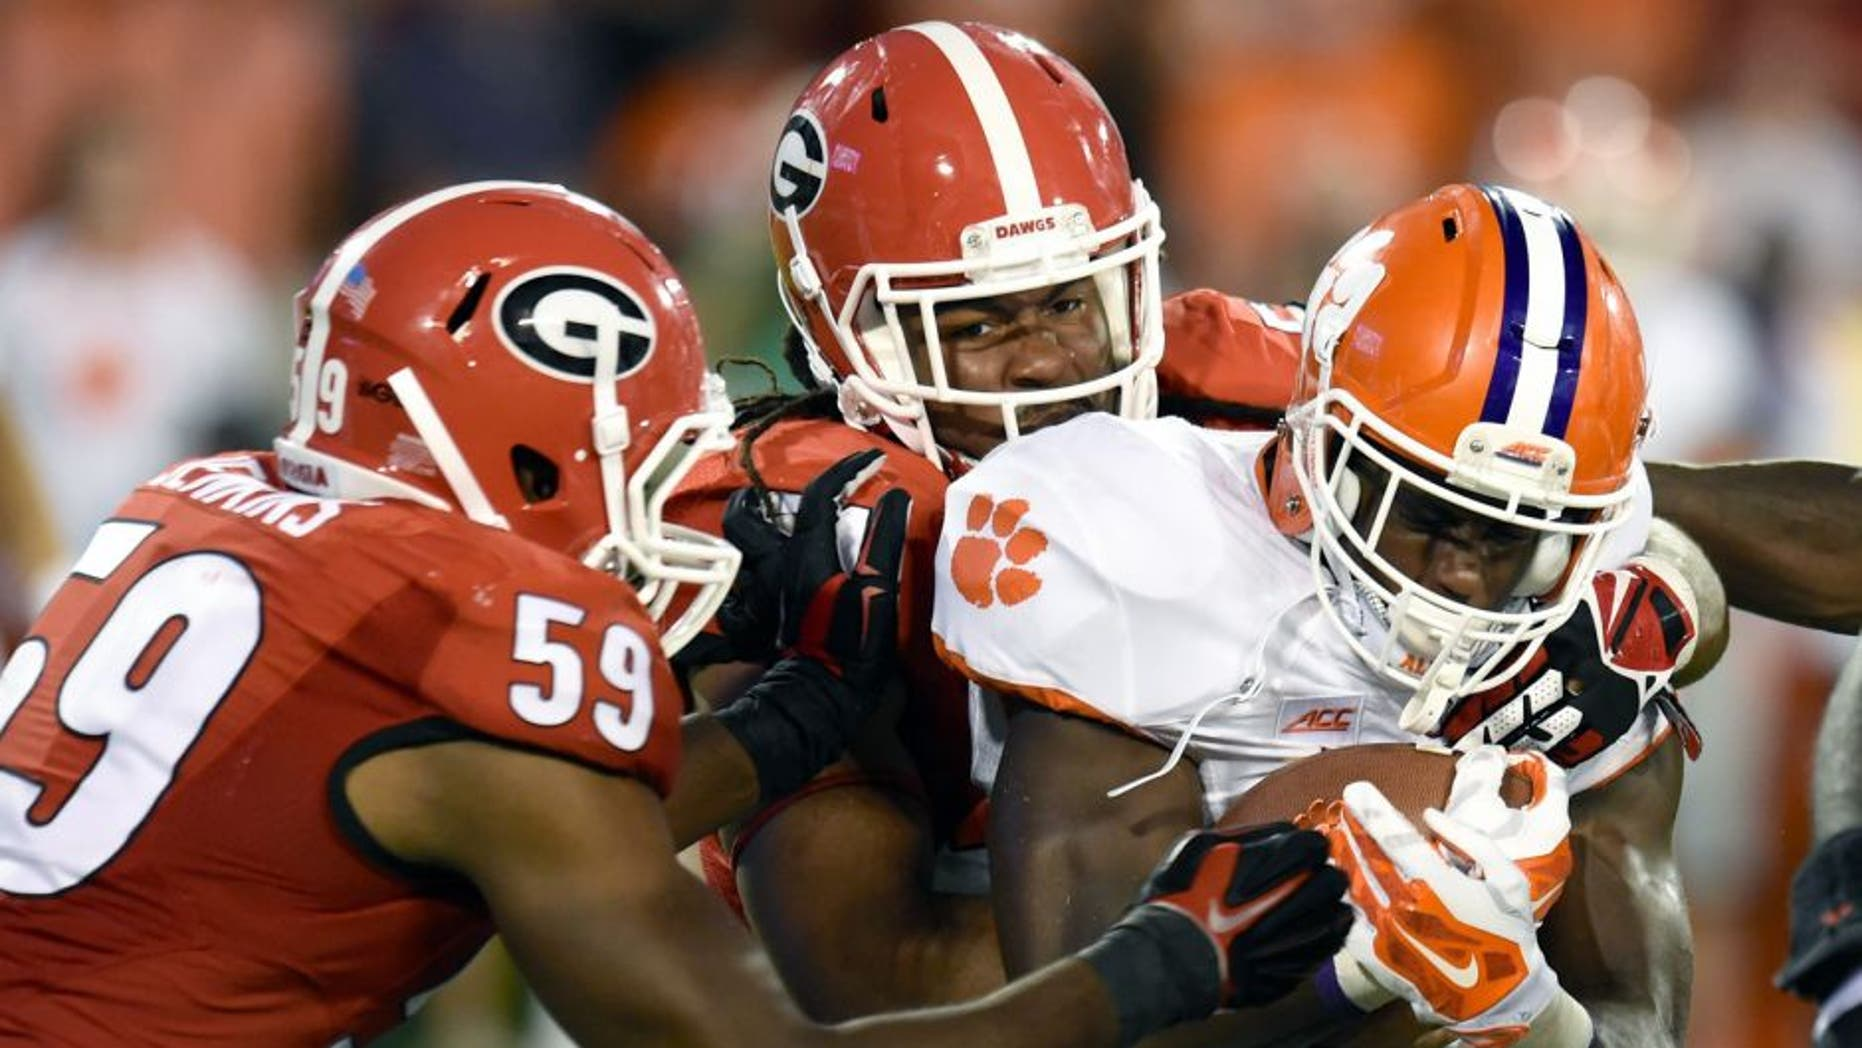 Aug 30, 2014; Athens, GA, USA; Clemson Tigers running back D.J. Howard (22) is tackled by Georgia Bulldogs linebacker Jordan Jenkins (59) and linebacker Ramik Wilson (51) during the second half at Sanford Stadium. Georgia defeated Clemson 45-21. Mandatory Credit: Dale Zanine-USA TODAY Sports